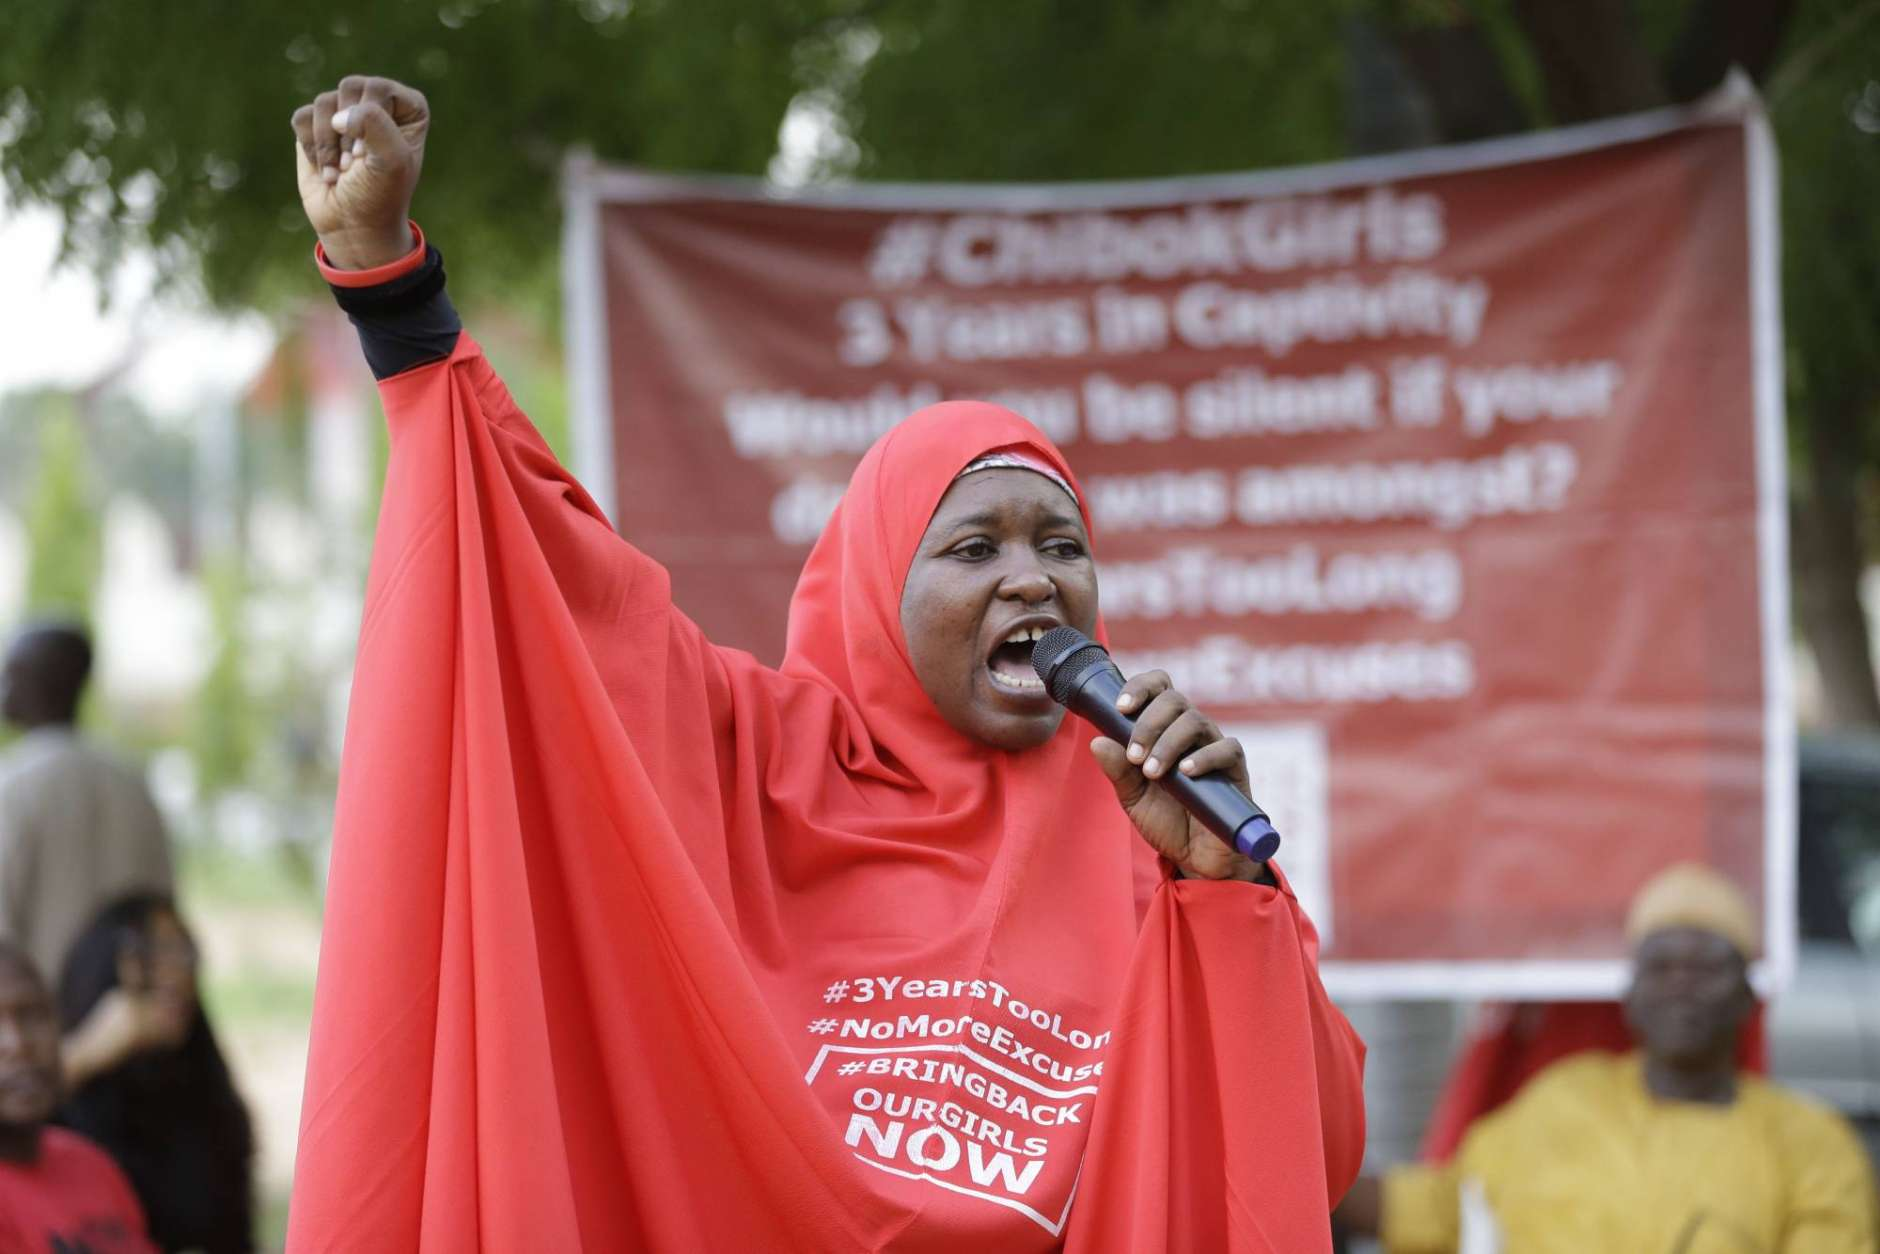 Aisha Yusuf, a 'Bring Back Our Girls' campaigner, speaks on the release of the kidnapped Chibok School Girls at the unity fountain in Abuja, Nigeria, Sunday, May 7, 2017. Five Boko Haram commanders were released in exchange for the freedom of 82 Chibok schoolgirls kidnapped by the extremist group three years ago, a Nigerian government official said Sunday, as the girls were expected to meet with the country's president and their families. (AP Photo/ Sunday Alamba)